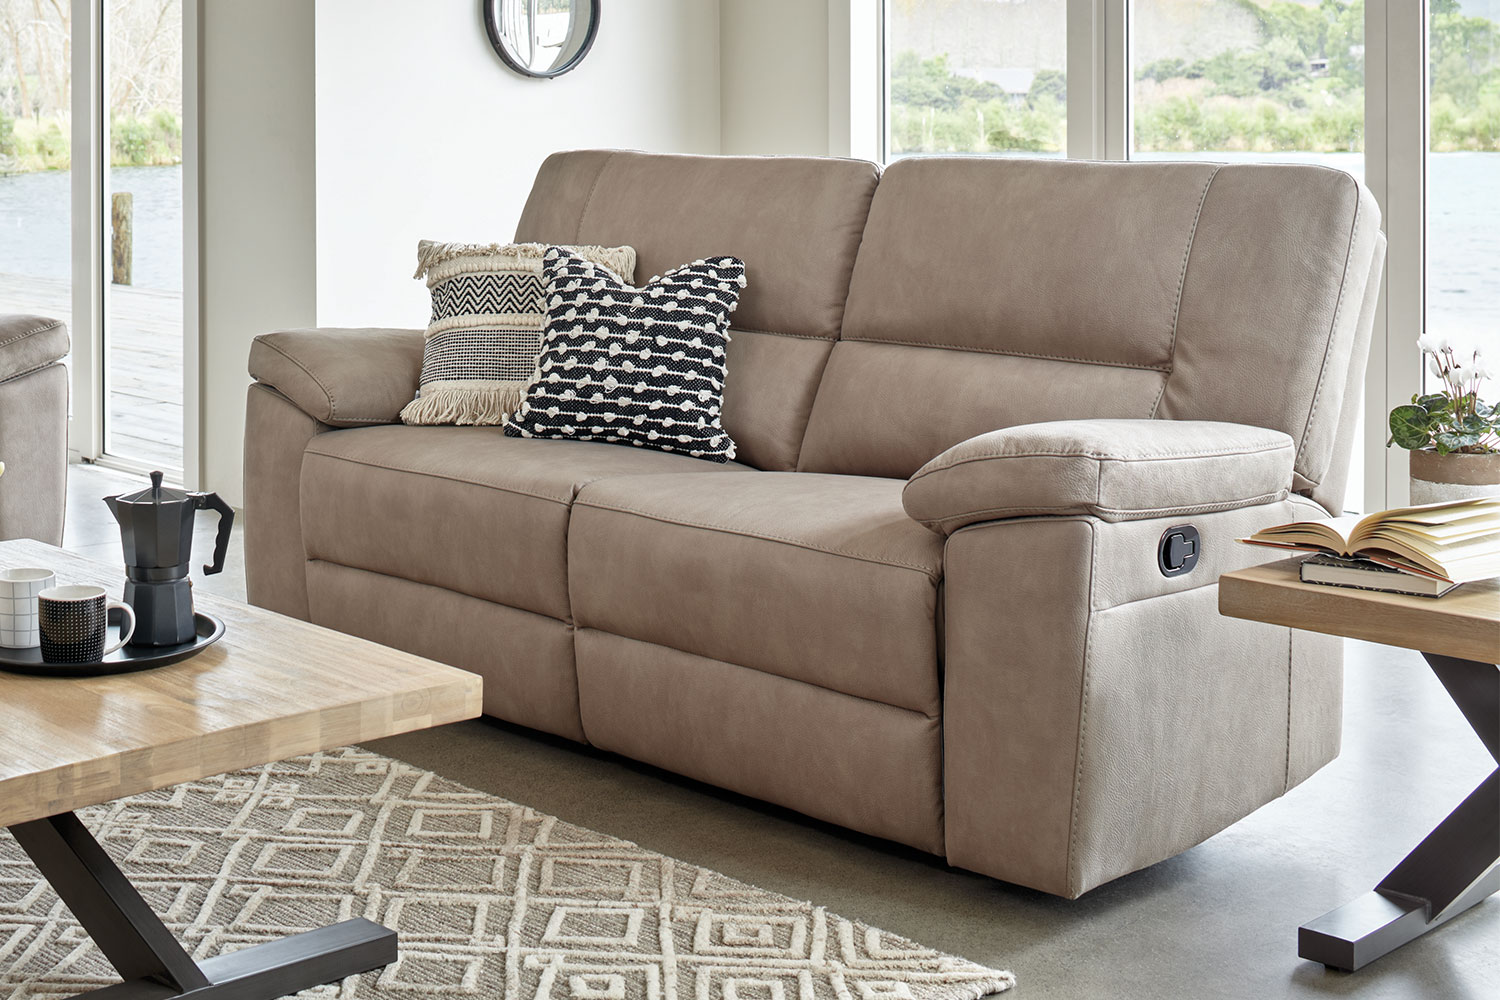 2 seater sofa new zealand ashley furniture and loveseat jenson 5 fabric by synargy harvey norman